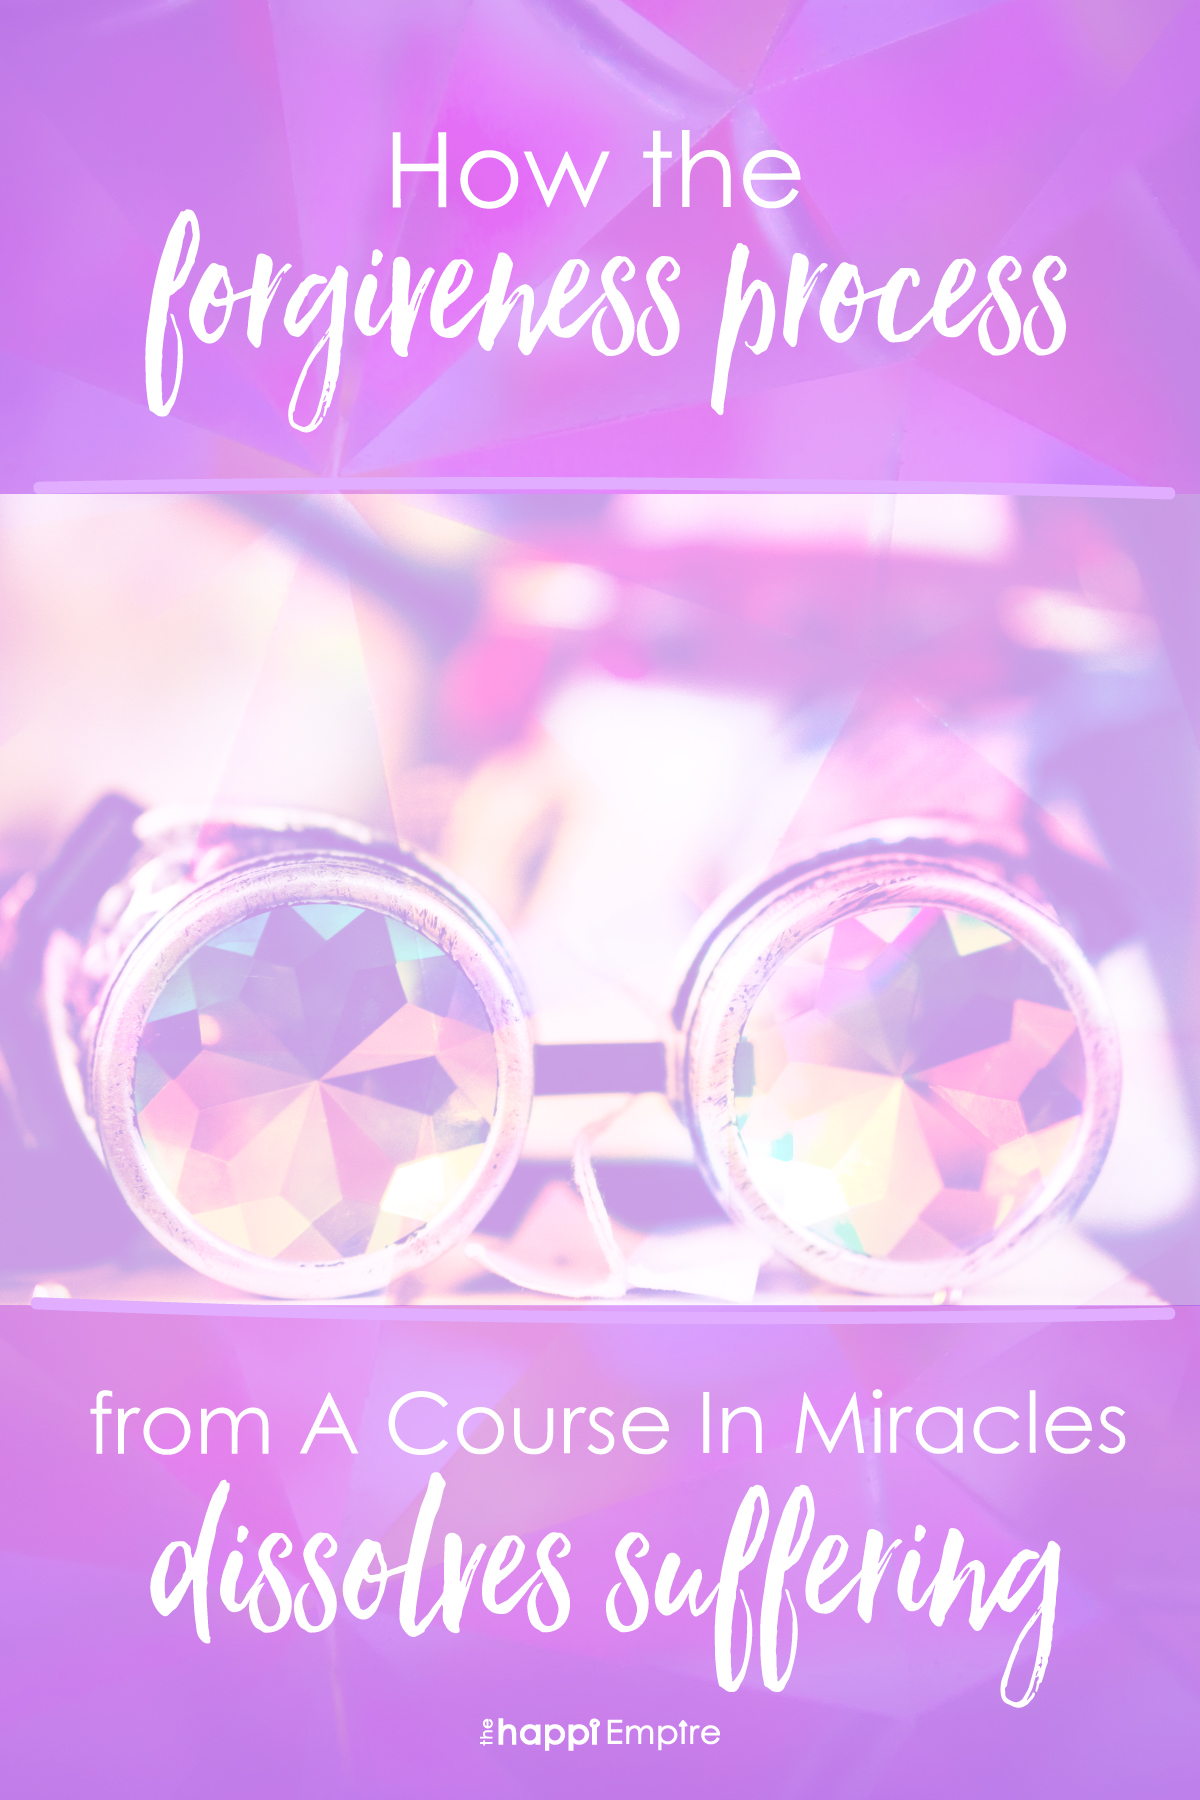 How the forgiveness process from A Course In Miracles dissolves suffering